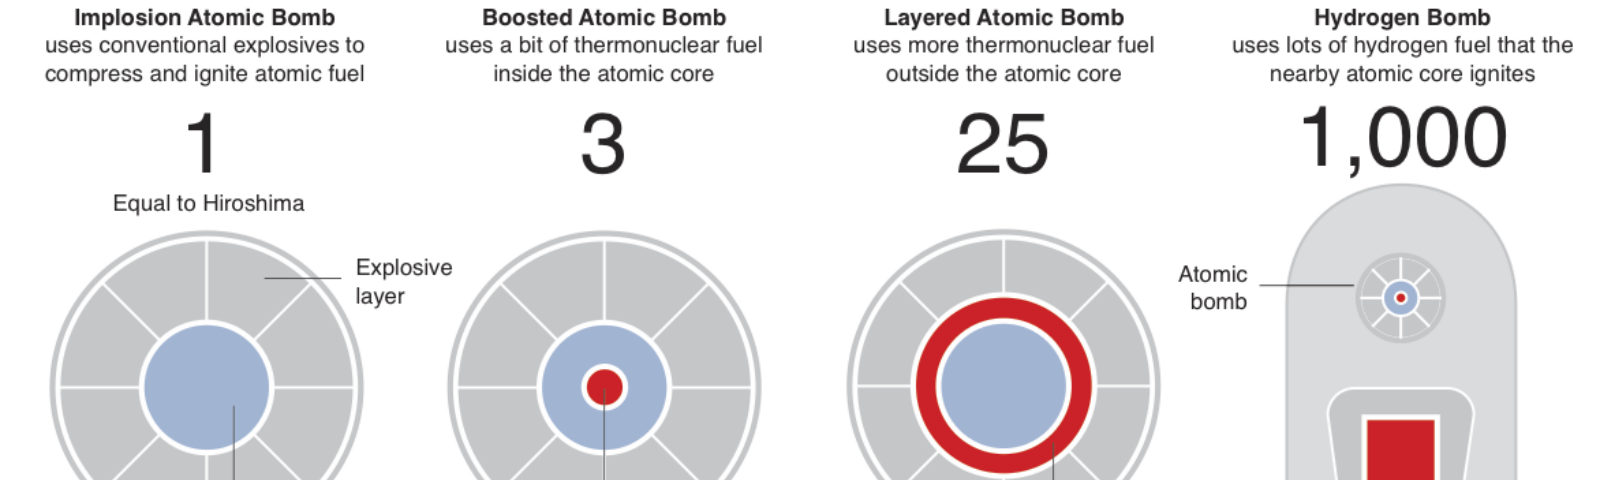 A Giant Nuclear Blast, but a Hydrogen Bomb? Too Soon to Say